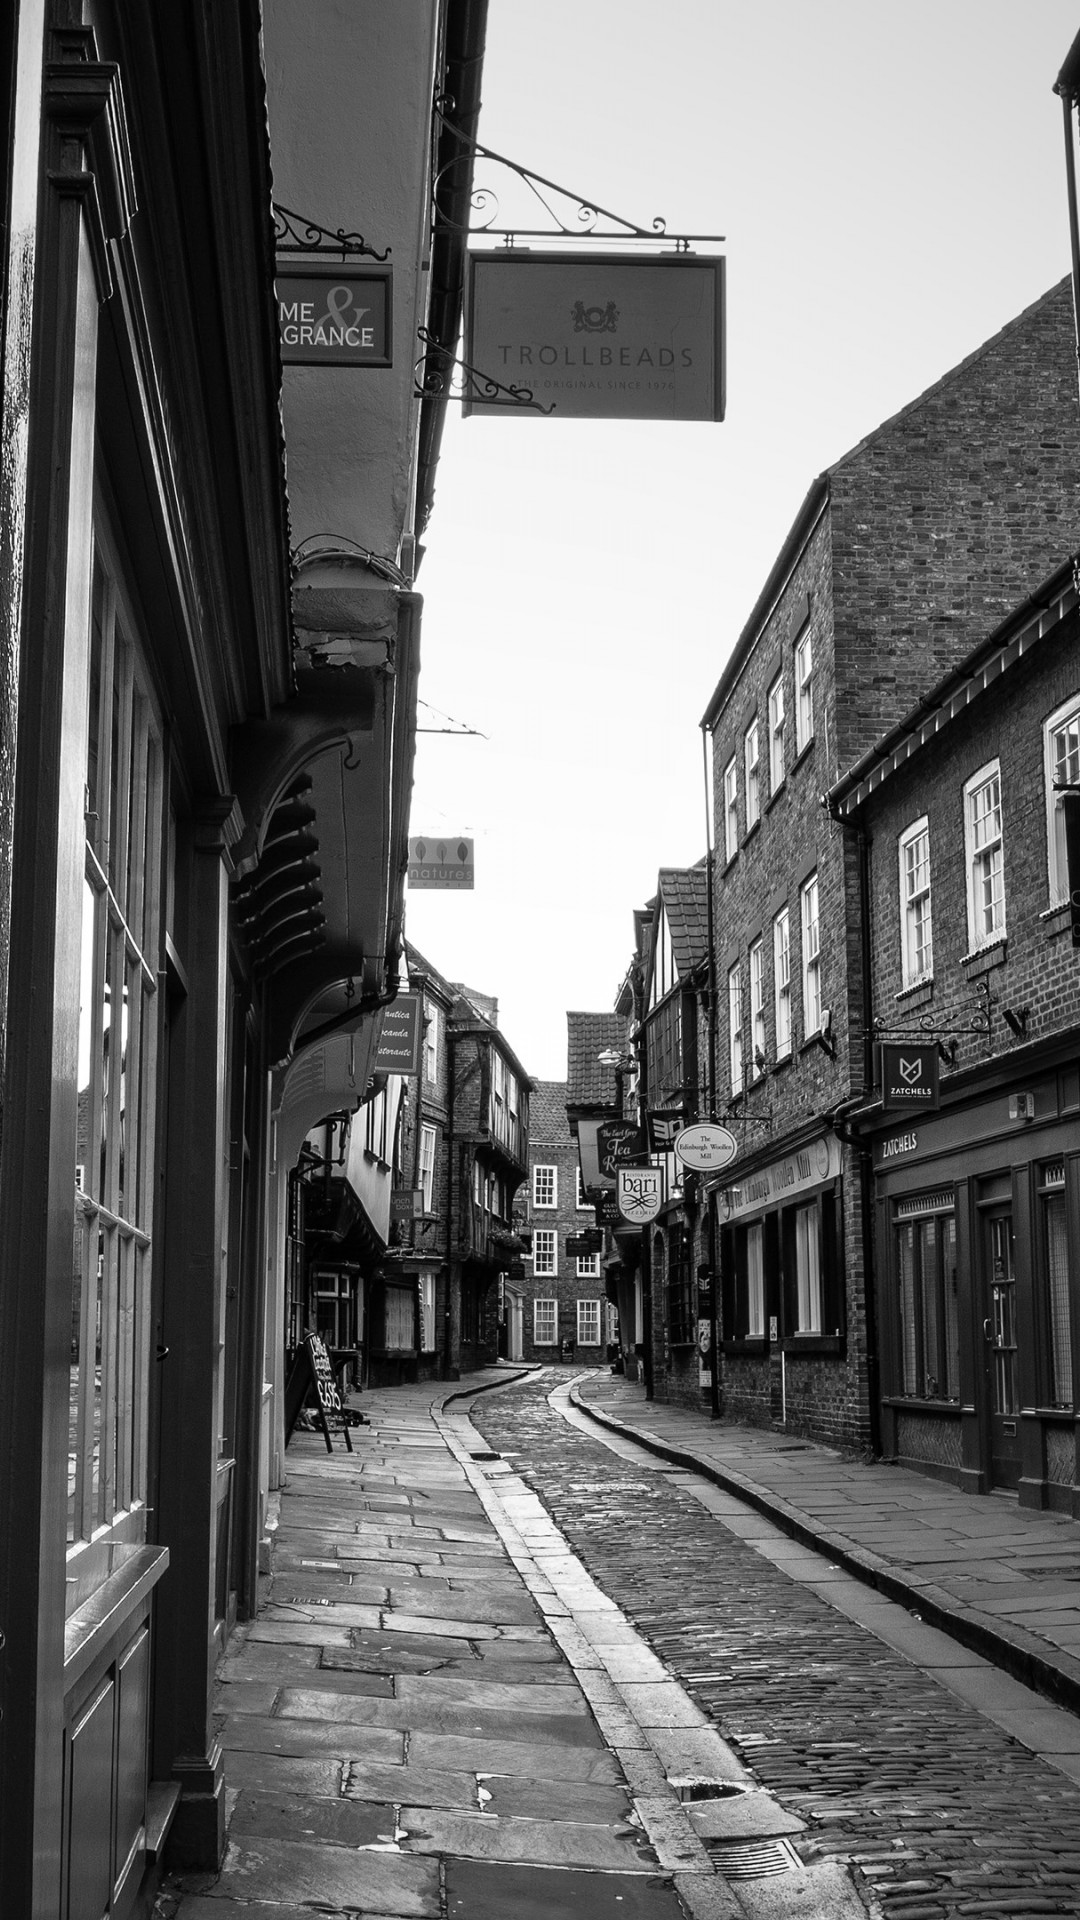 On the streets of York, England wallpaper 1080x1920